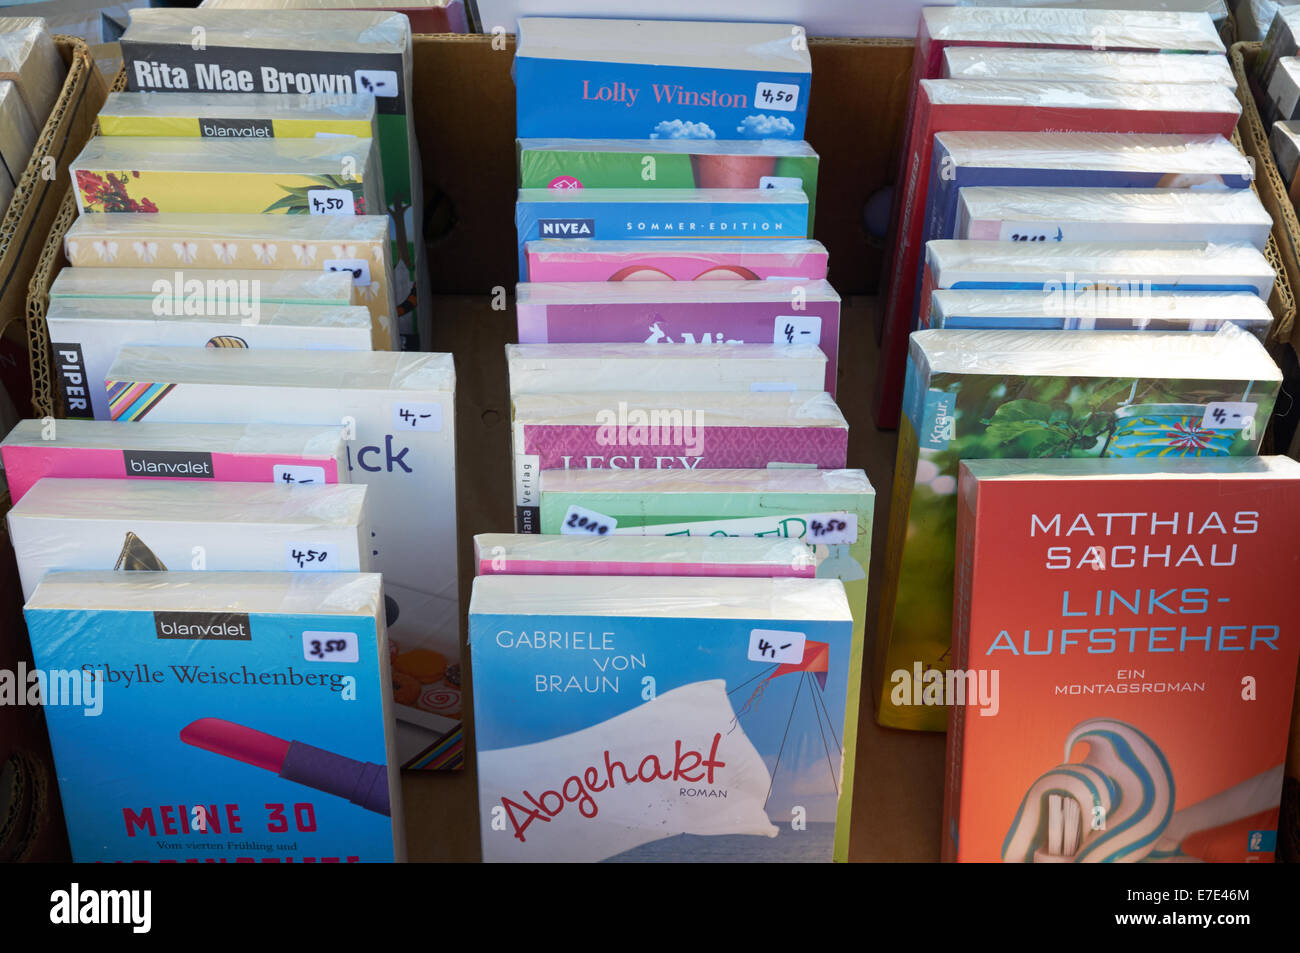 Secondhand books for sale, Leichlingen, Germany. - Stock Image